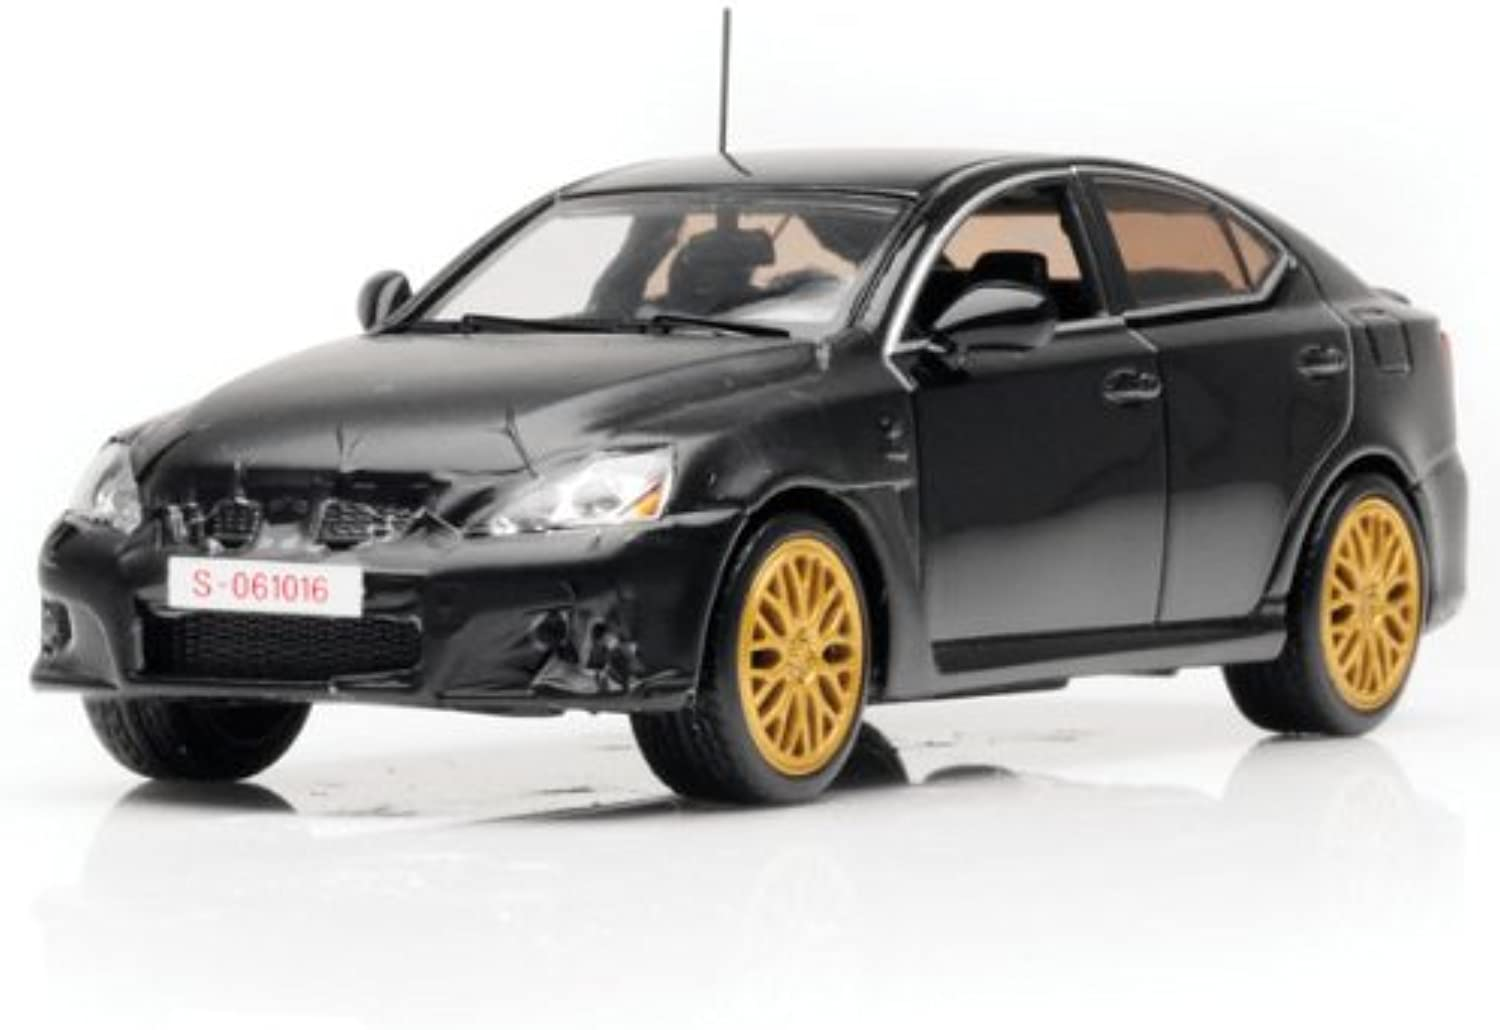 Kyosho Kyosho 1 43] [Jck03304nu Lexus Is F Nurburgring Test Car (japan import)